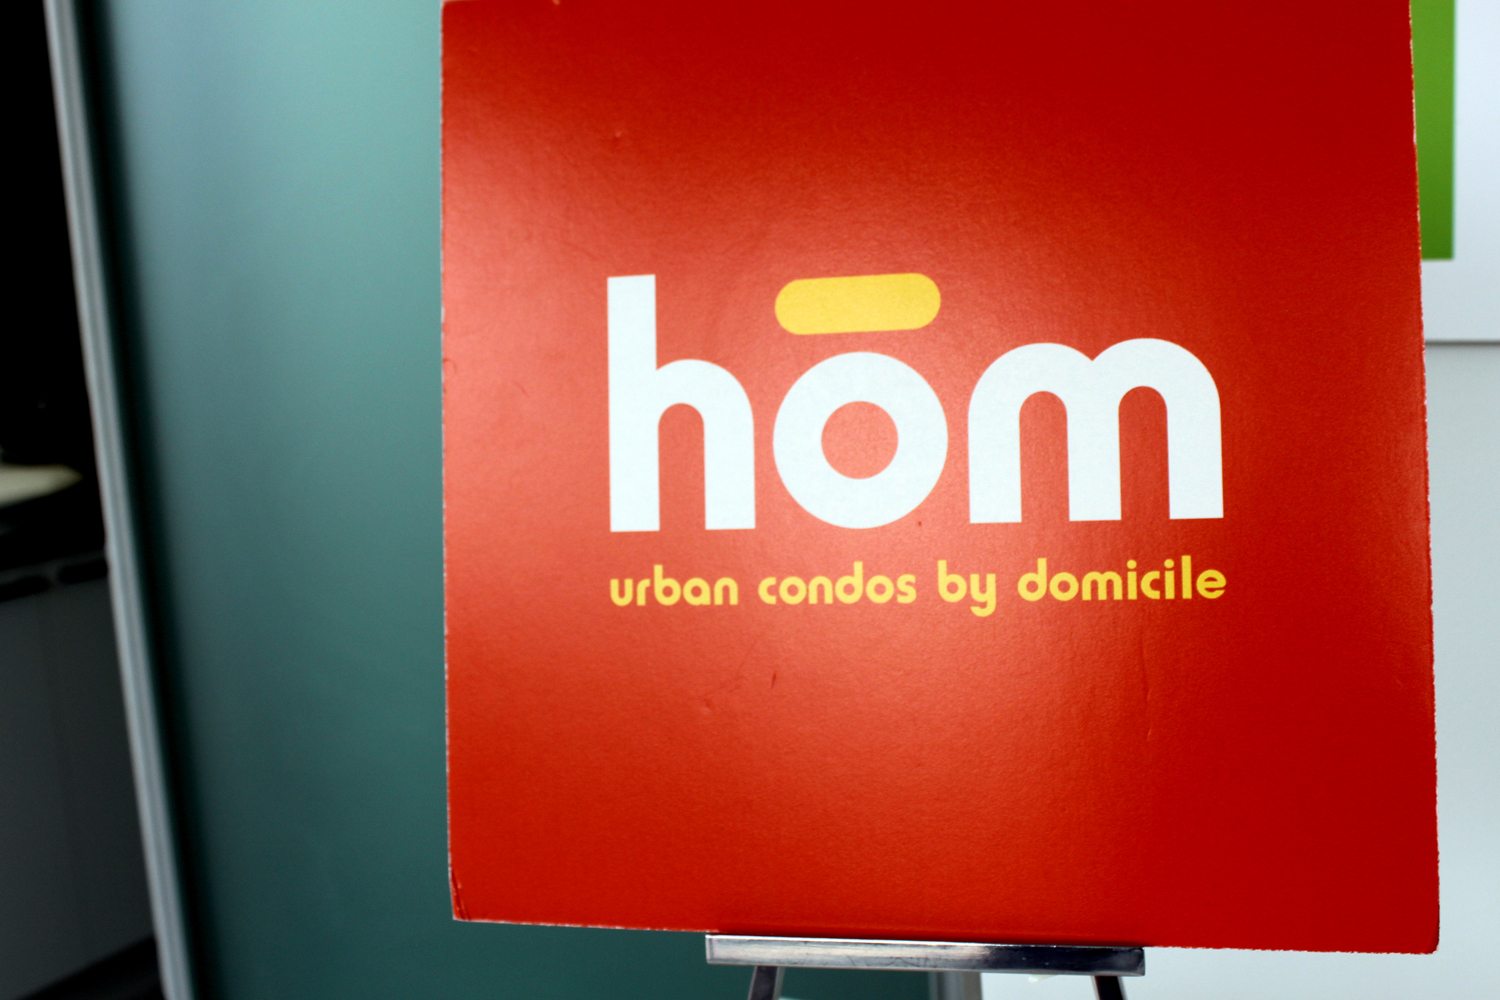 Domicile's Hom development is the place to live for community, comfort, and convenience